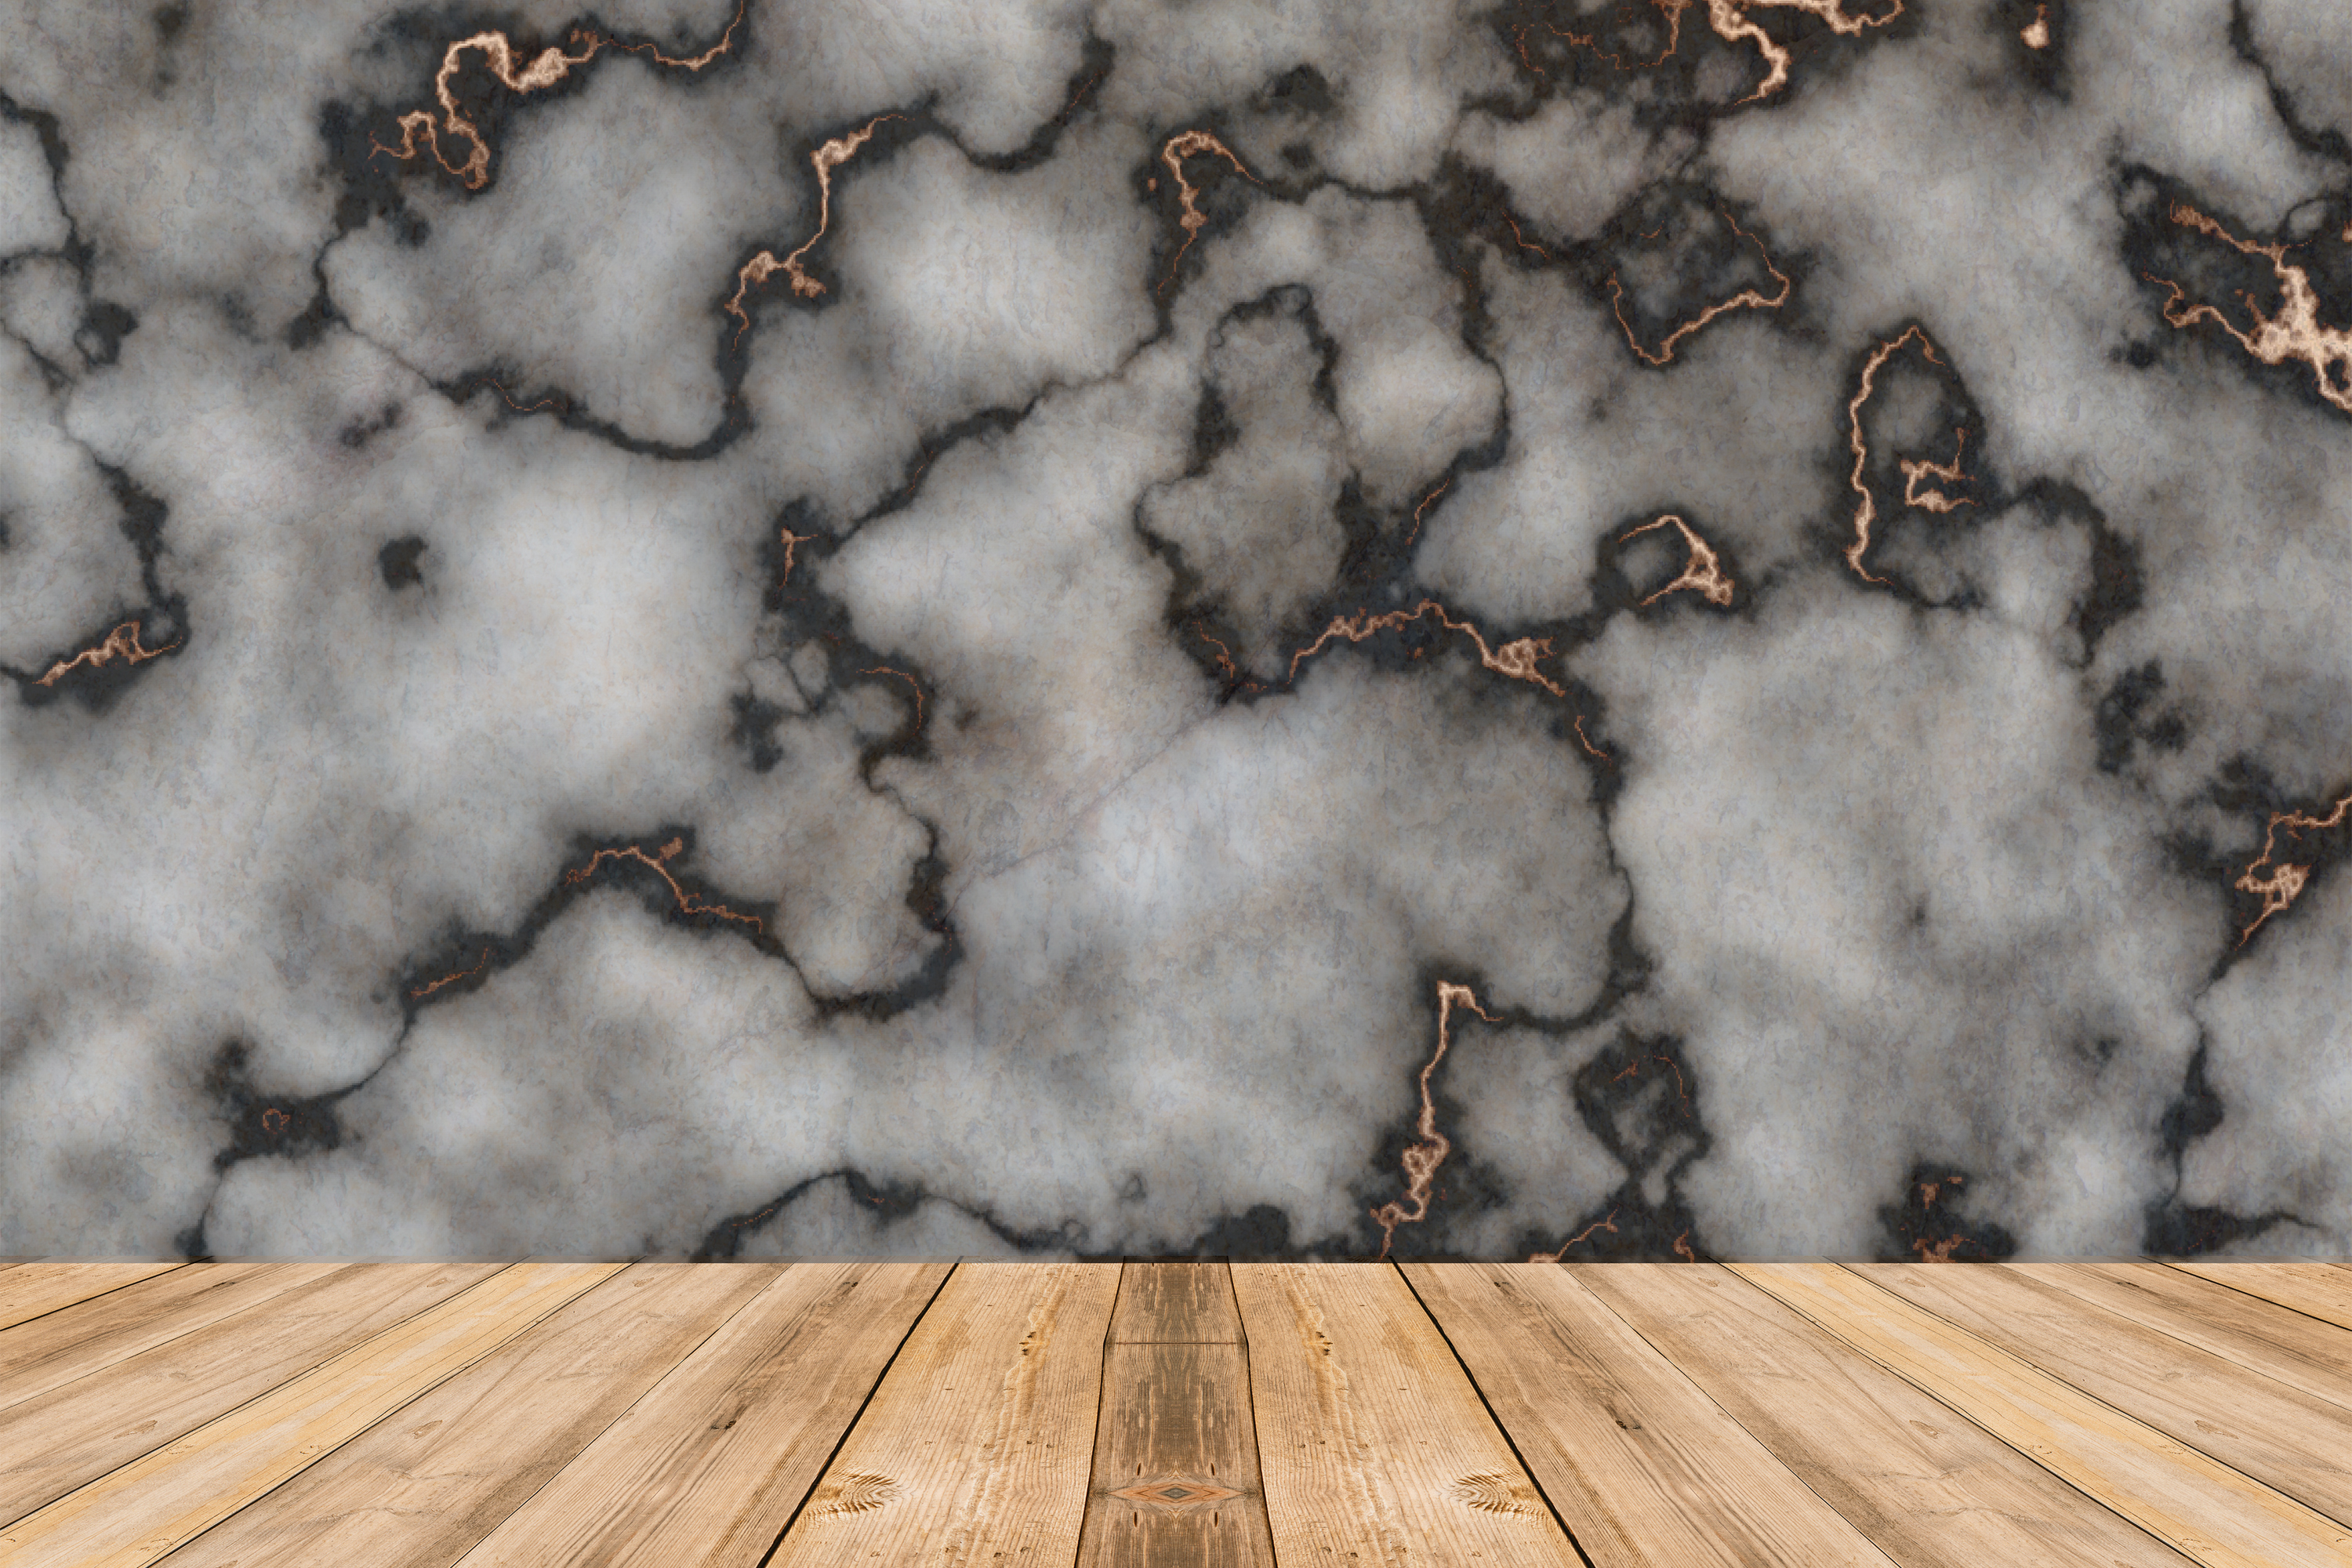 30 Realistic Marble Textures - JPG example image 14